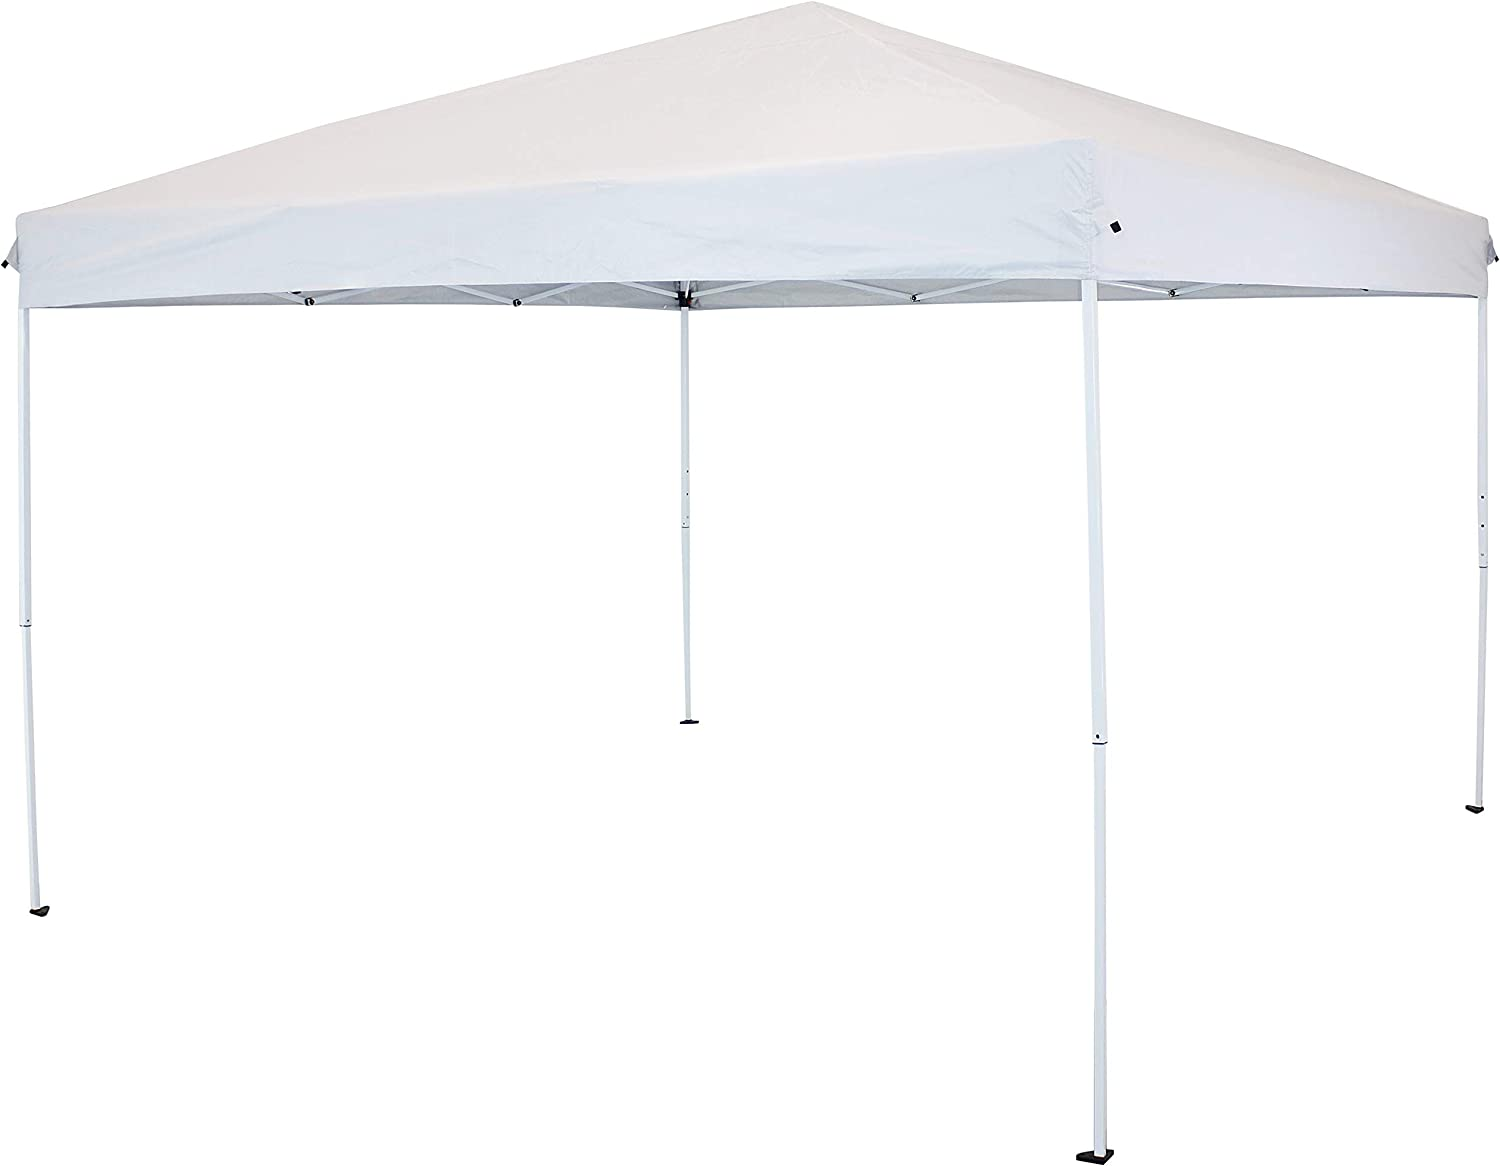 Sunnydaze 12 x 12 Foot Steel Frame Easy-Up Canopy with Carrying Bag - White - Instant Outdoor Portable Pop Up Tent Shelter - Perfect for The Garden, Patio, Backyard, Camp or Deck